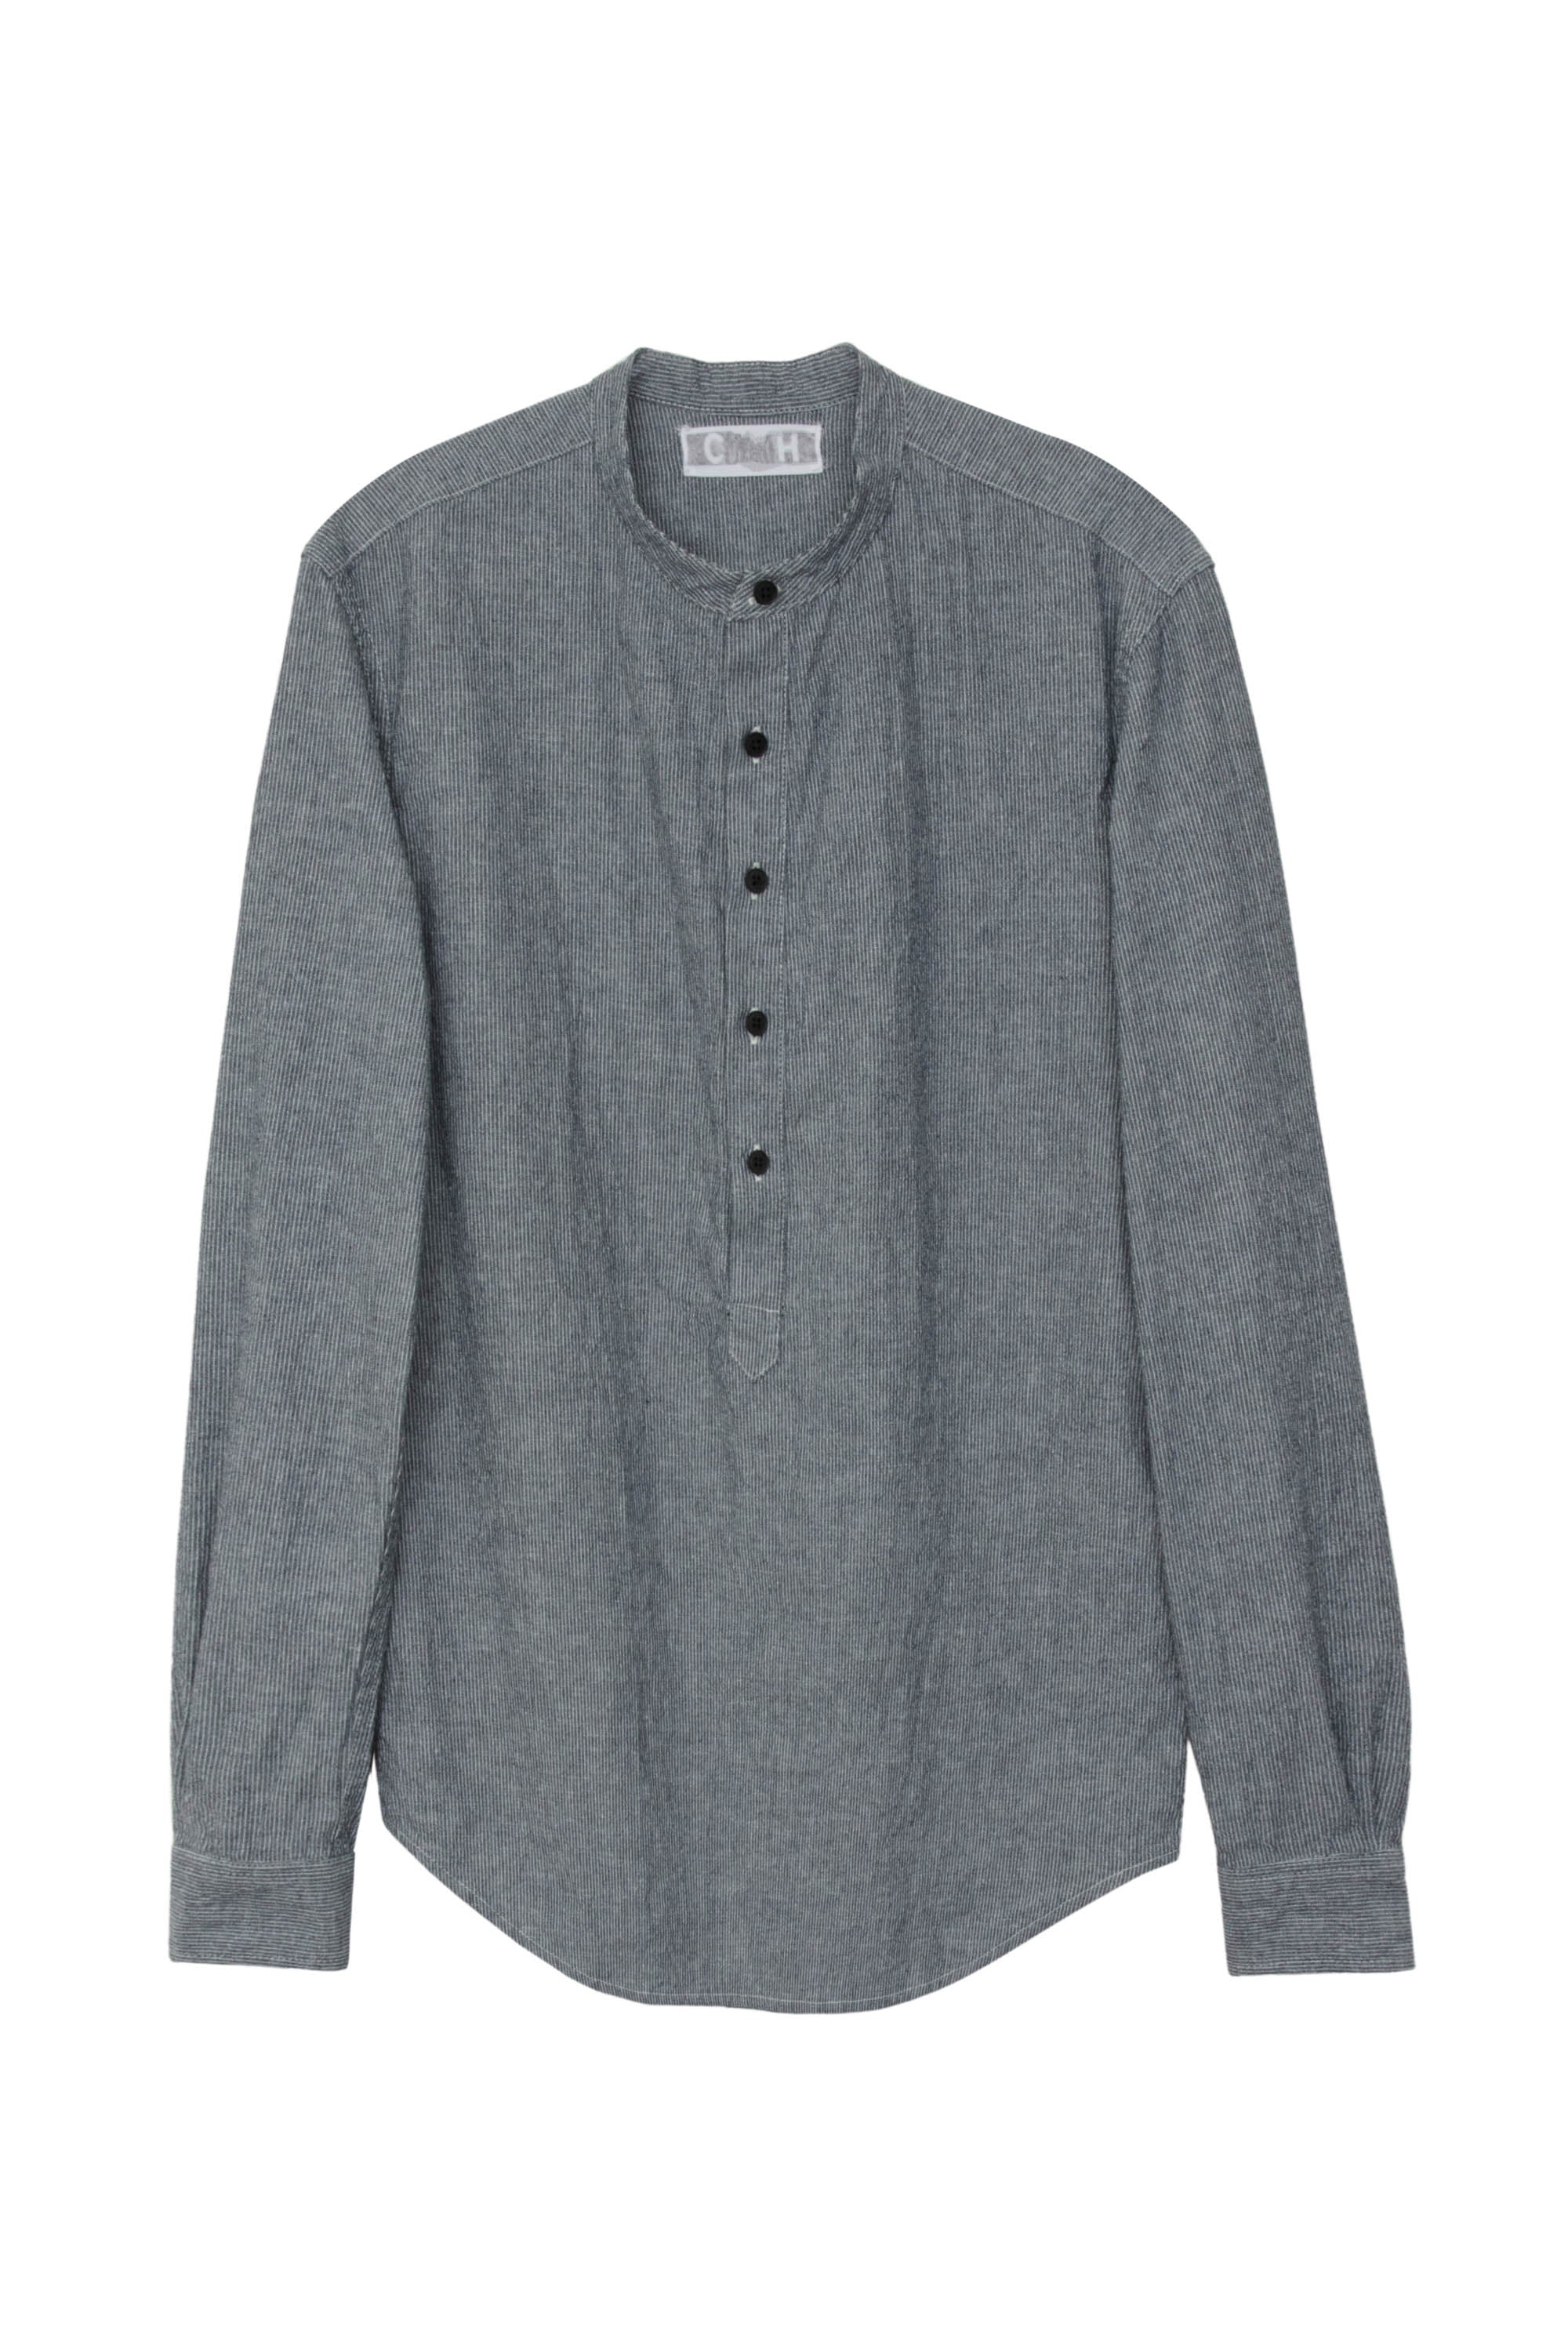 GRANDDAD PULLOVER SHIRT DARK DENIM